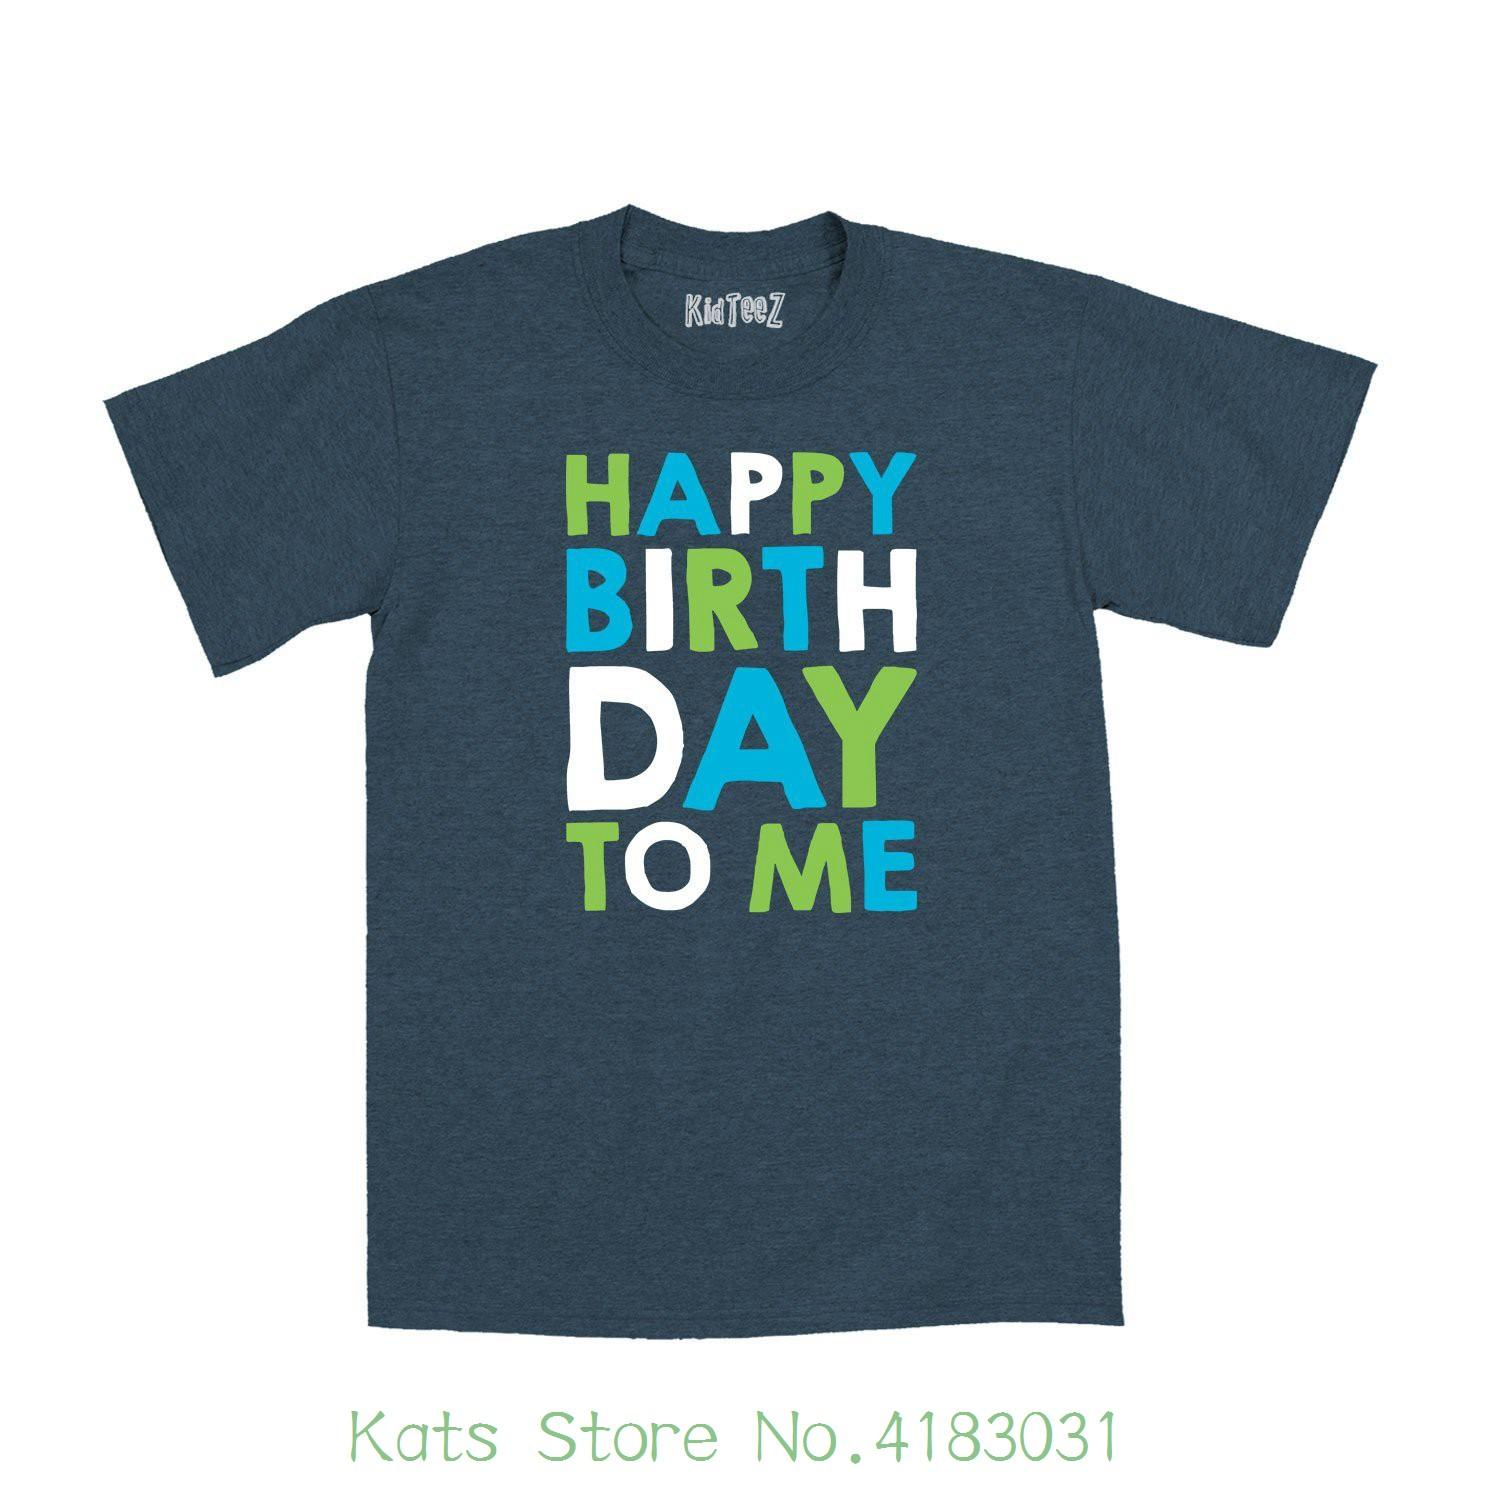 Instant Message Happy Birthday To Me Stacked Blue Green Fun Kids Cute Novelty Toddler T Shirt Cartoon Character Buy Tshirts The Who Shirts From Katsstore